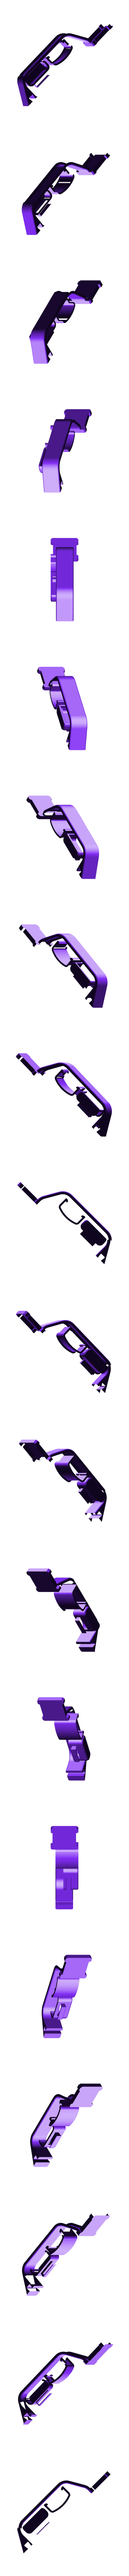 grip_handle_deg45.stl Download free STL file Oculus Quest Grip Handle • 3D printer template, CyberCyclist